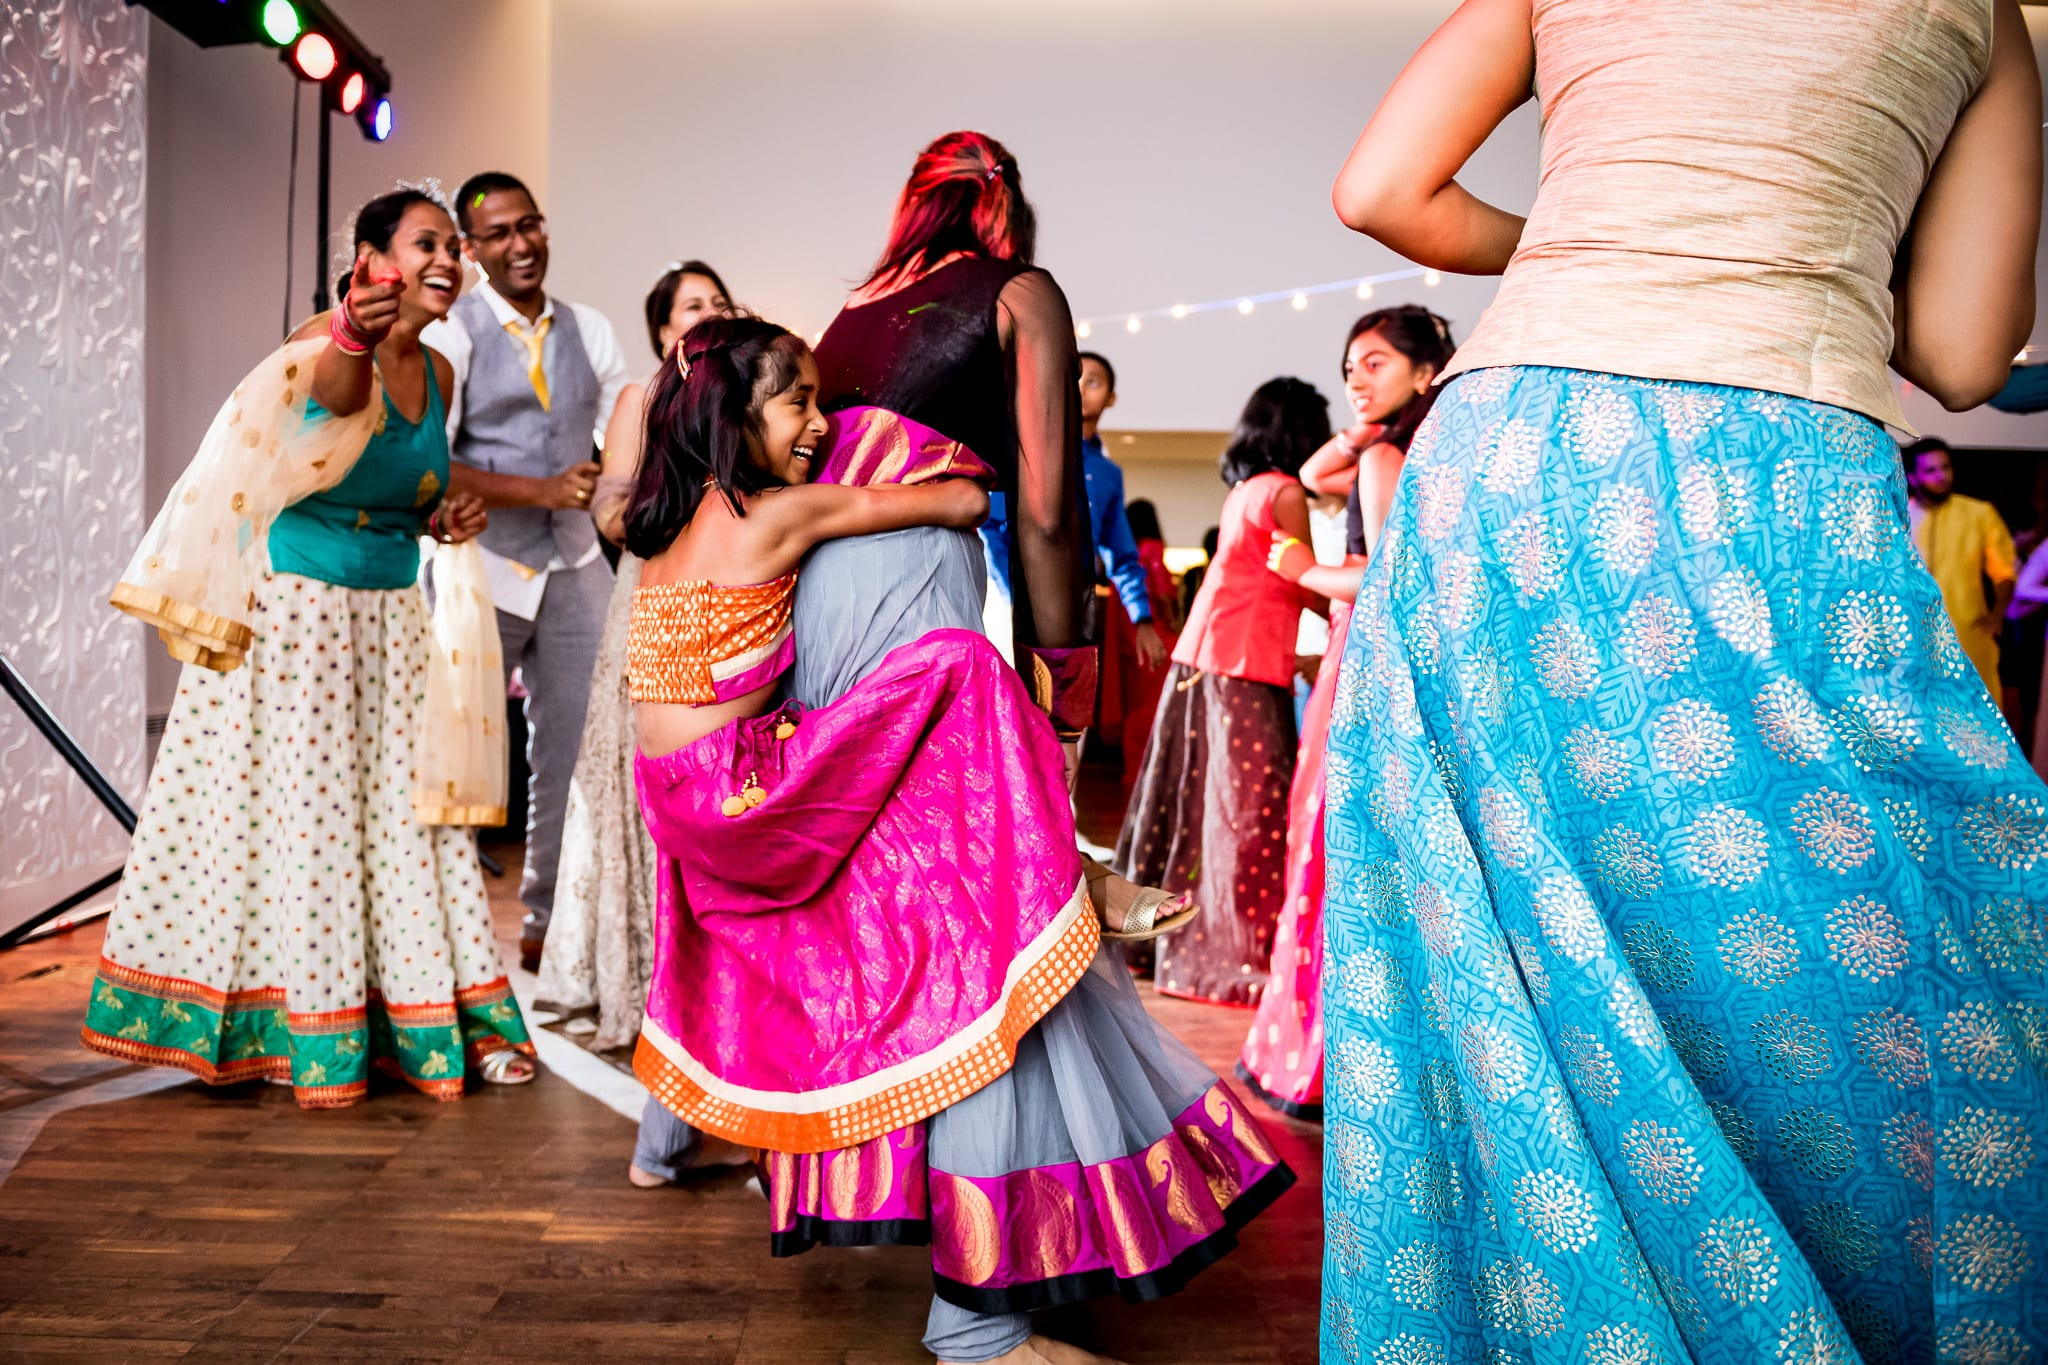 Junior bridesmaid hangs playfully on her mother, on the dance floor